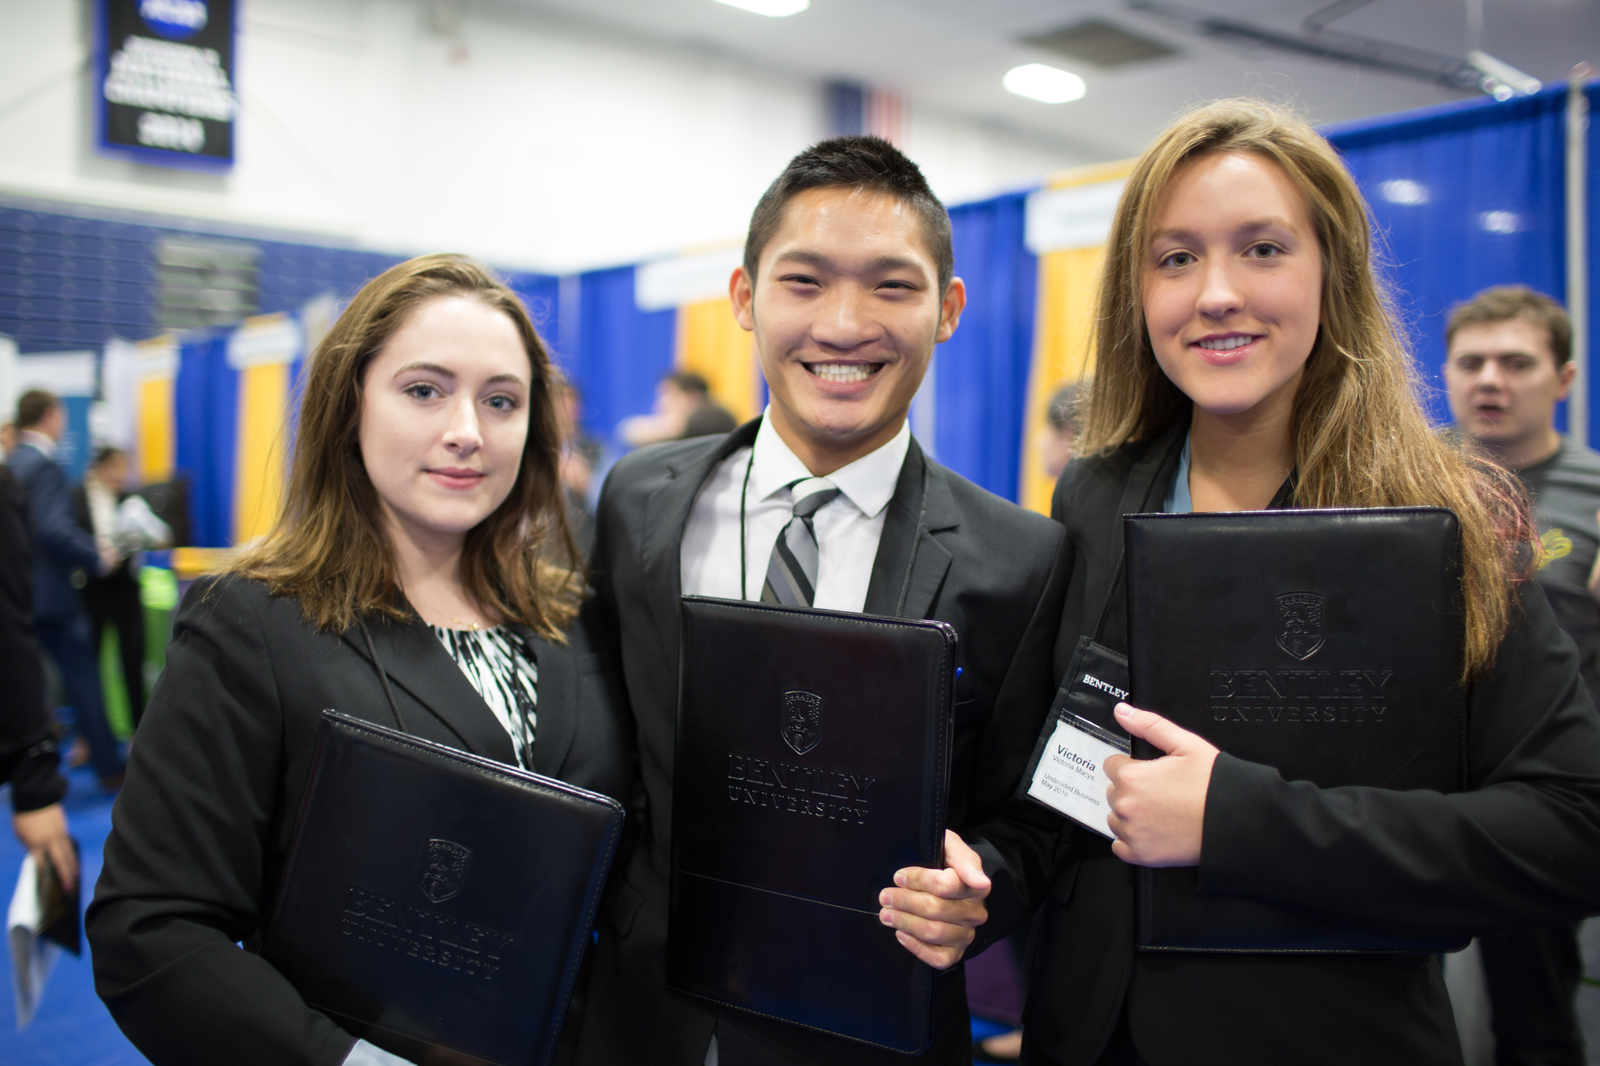 Bentley Graduates: 99 Percent Are Employed Or In Grad